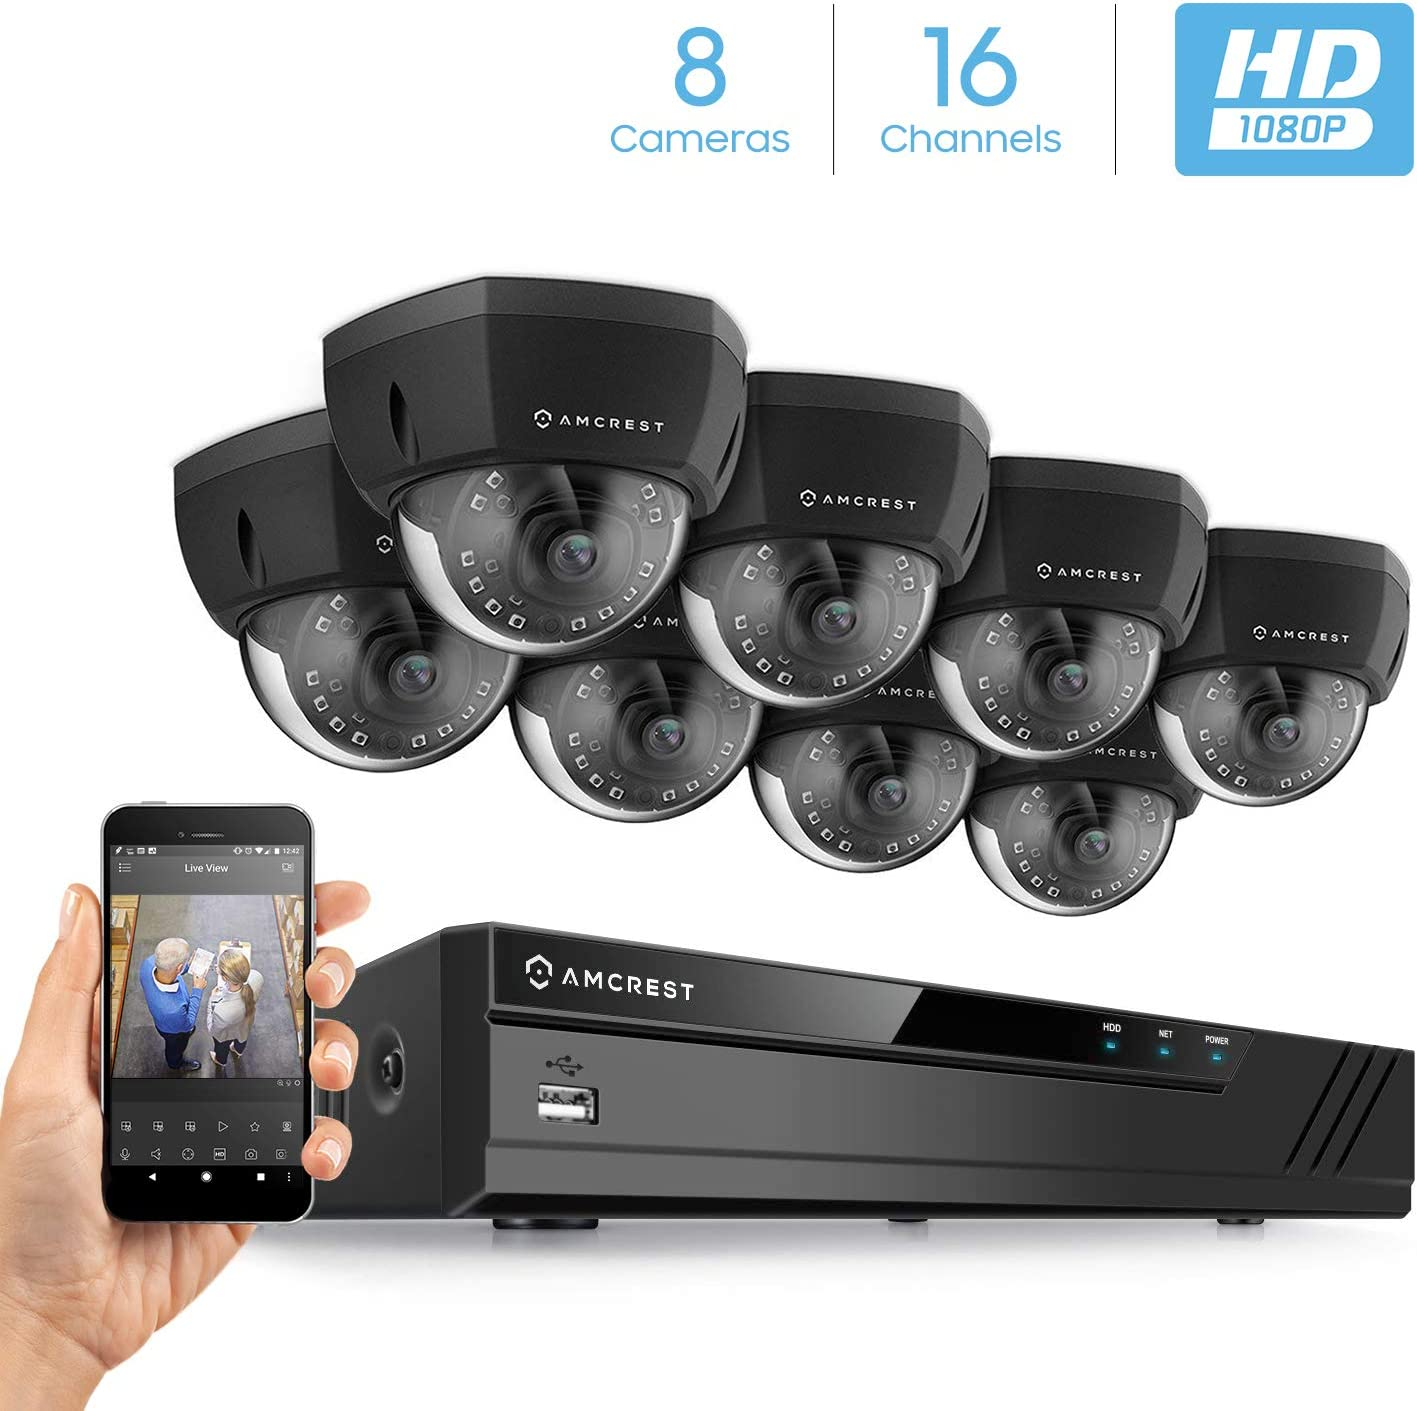 Amcrest 2MP 1080P Security Camera System, w 4K 16CH 8-Port PoE NVR 8 x 2-Megapixel 3.6mm Wide Angle Lens Weatherproof Metal Dome PoE IP Cameras, NV4116E-HS-IP2M-851EB8 Black